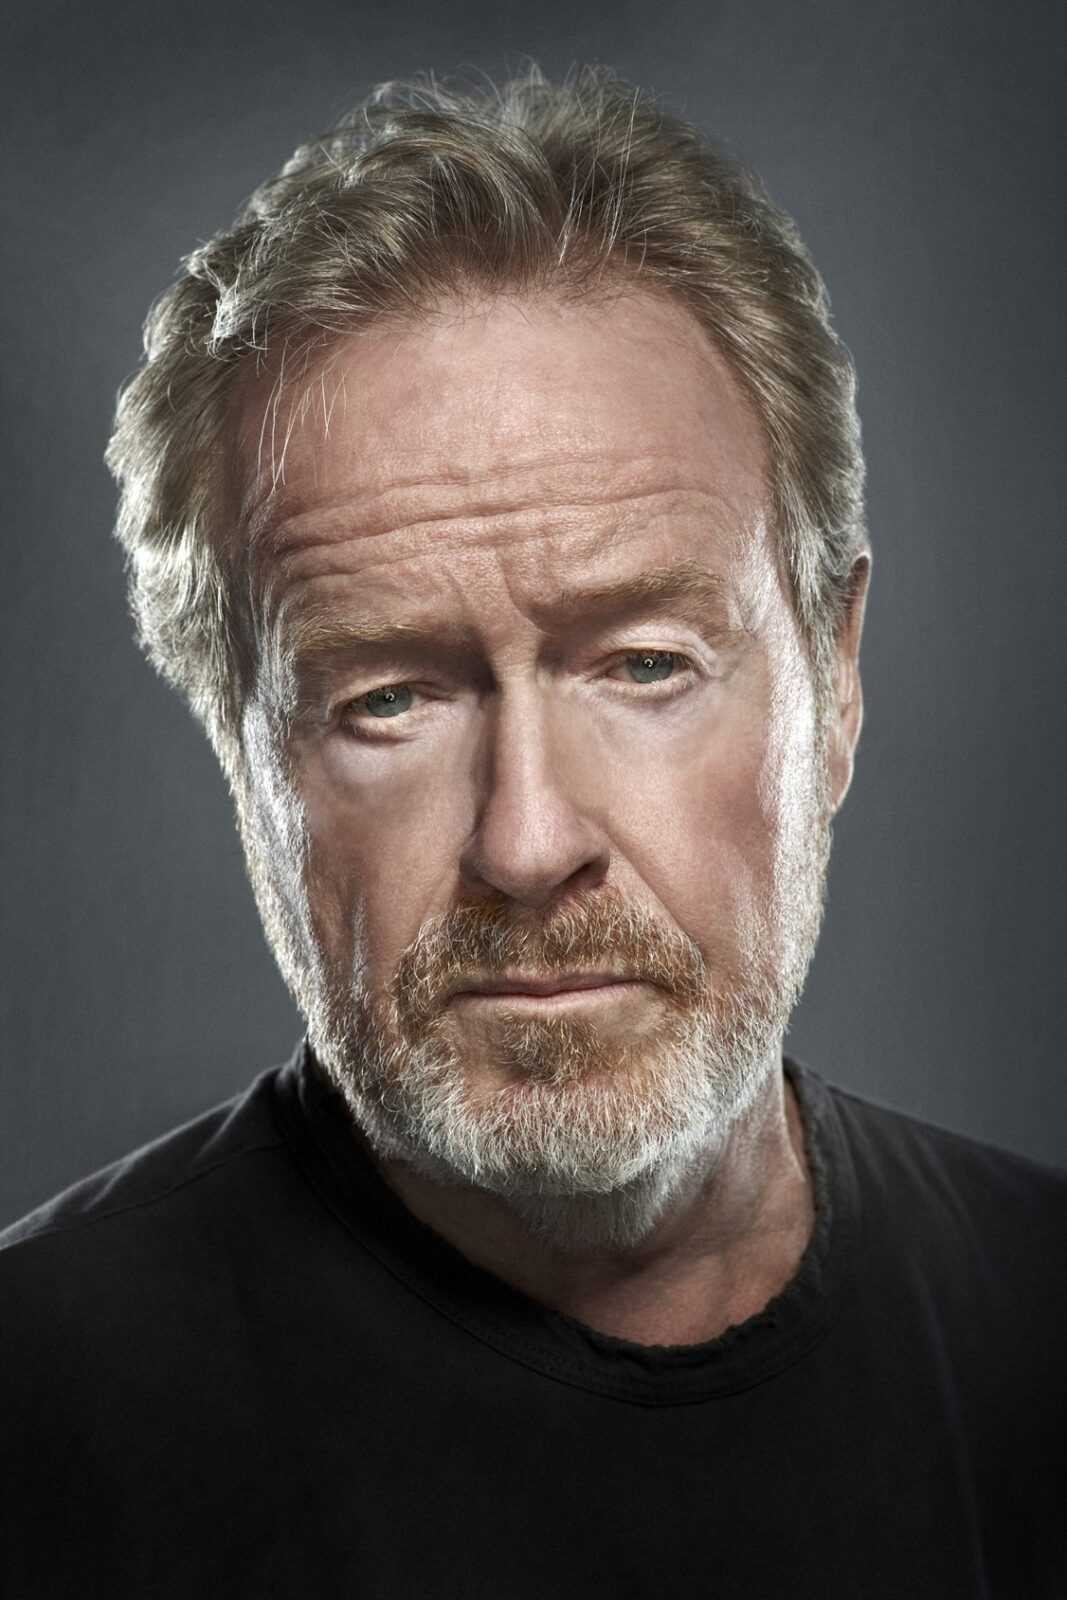 Ridley Scott e National Geographic ricordano l'omicidio Kennedy | Digitale terrestre: Dtti.it